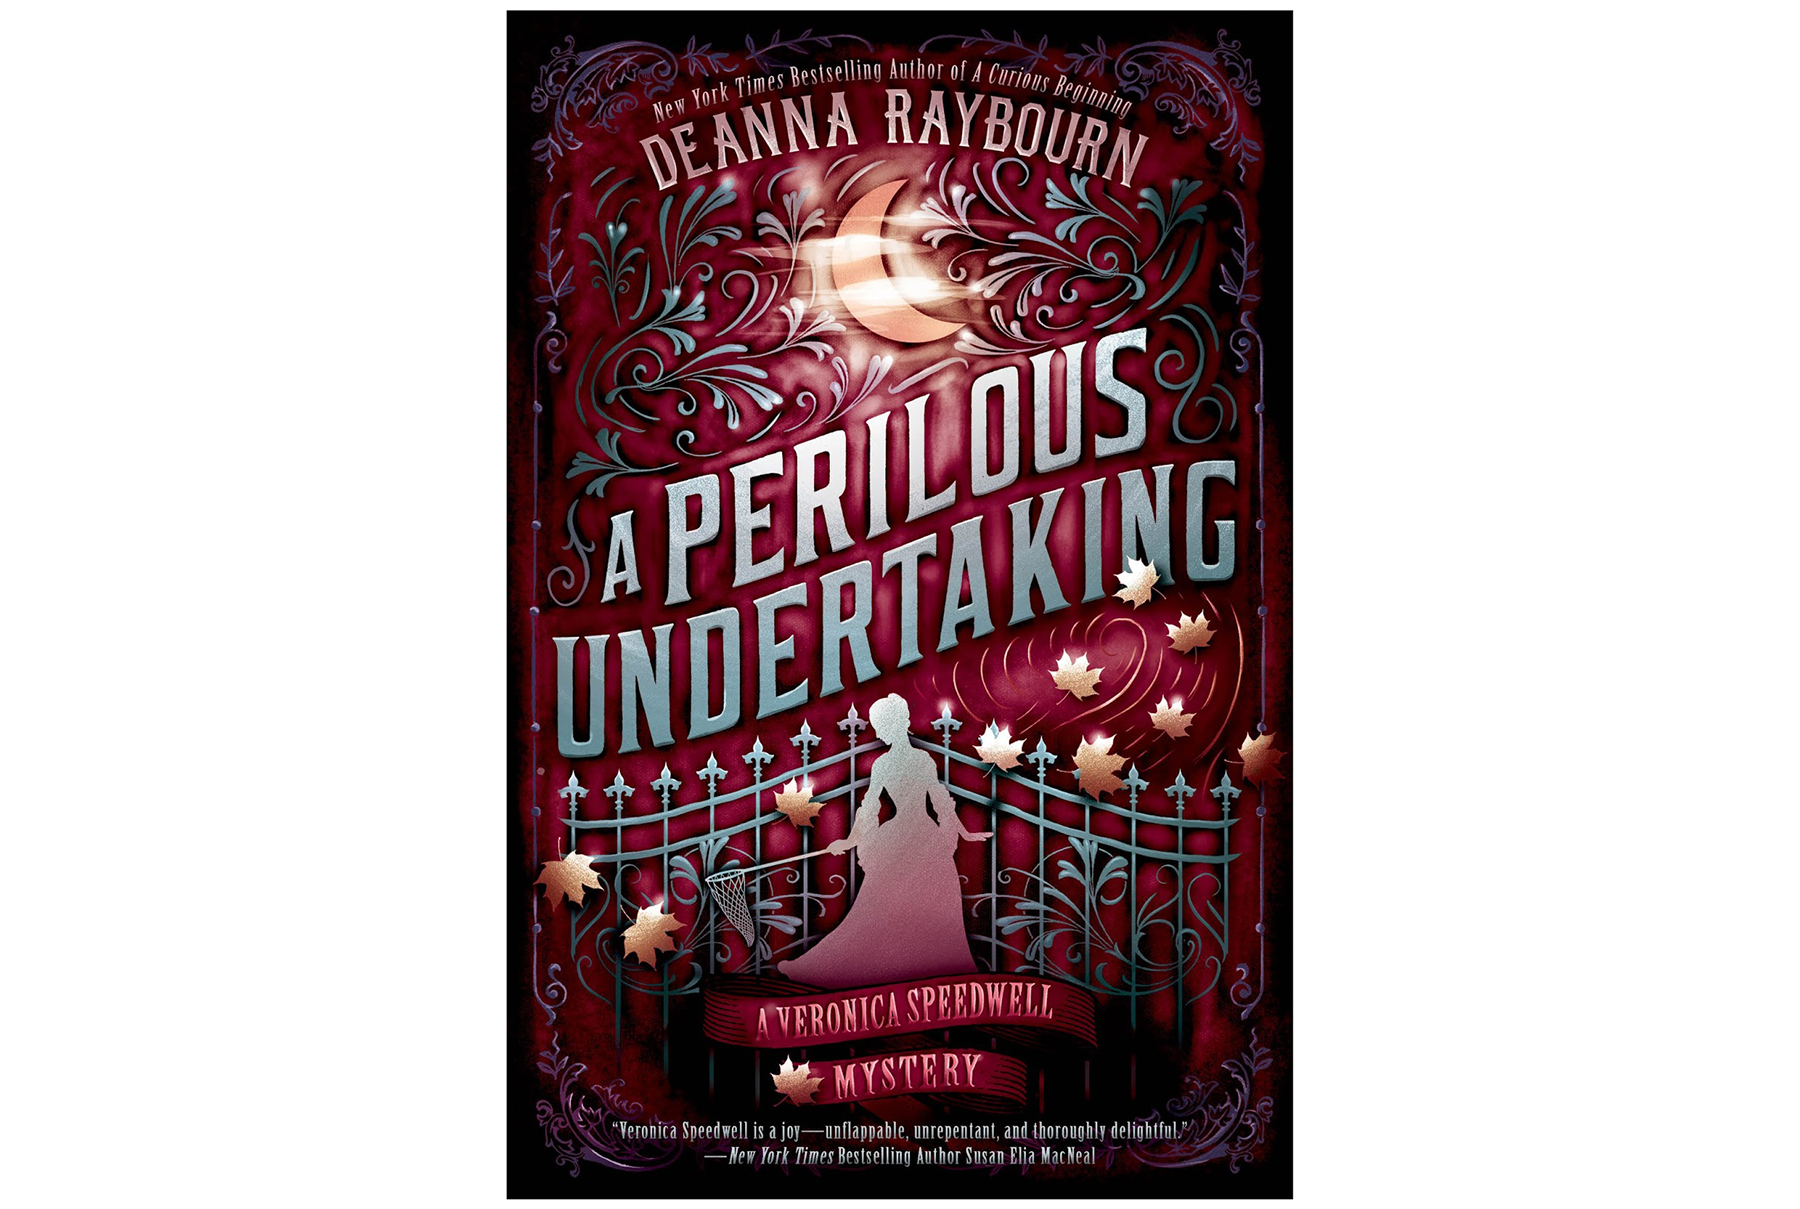 A Perilous Undertaking, by Deanna Raybourn